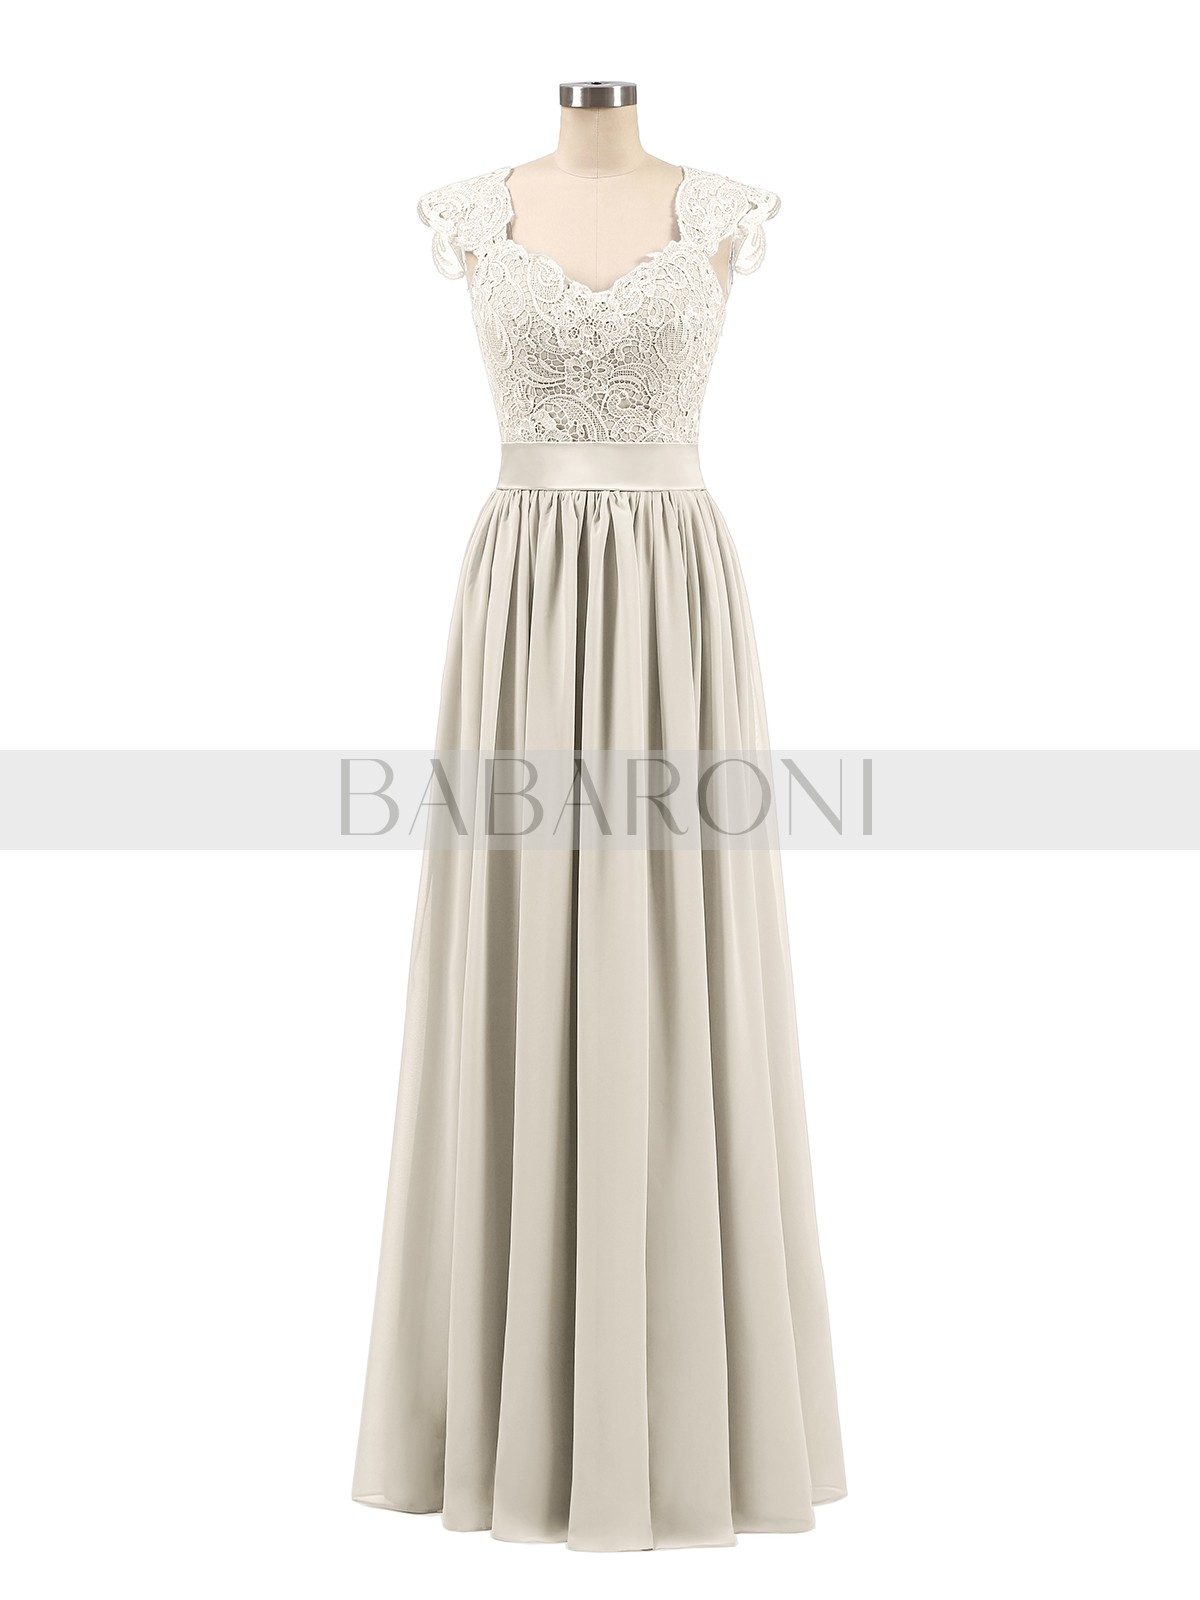 Taupe Jennifer Long Chiffon Dress with Lace Appliqued Bodice  659c3f1e29